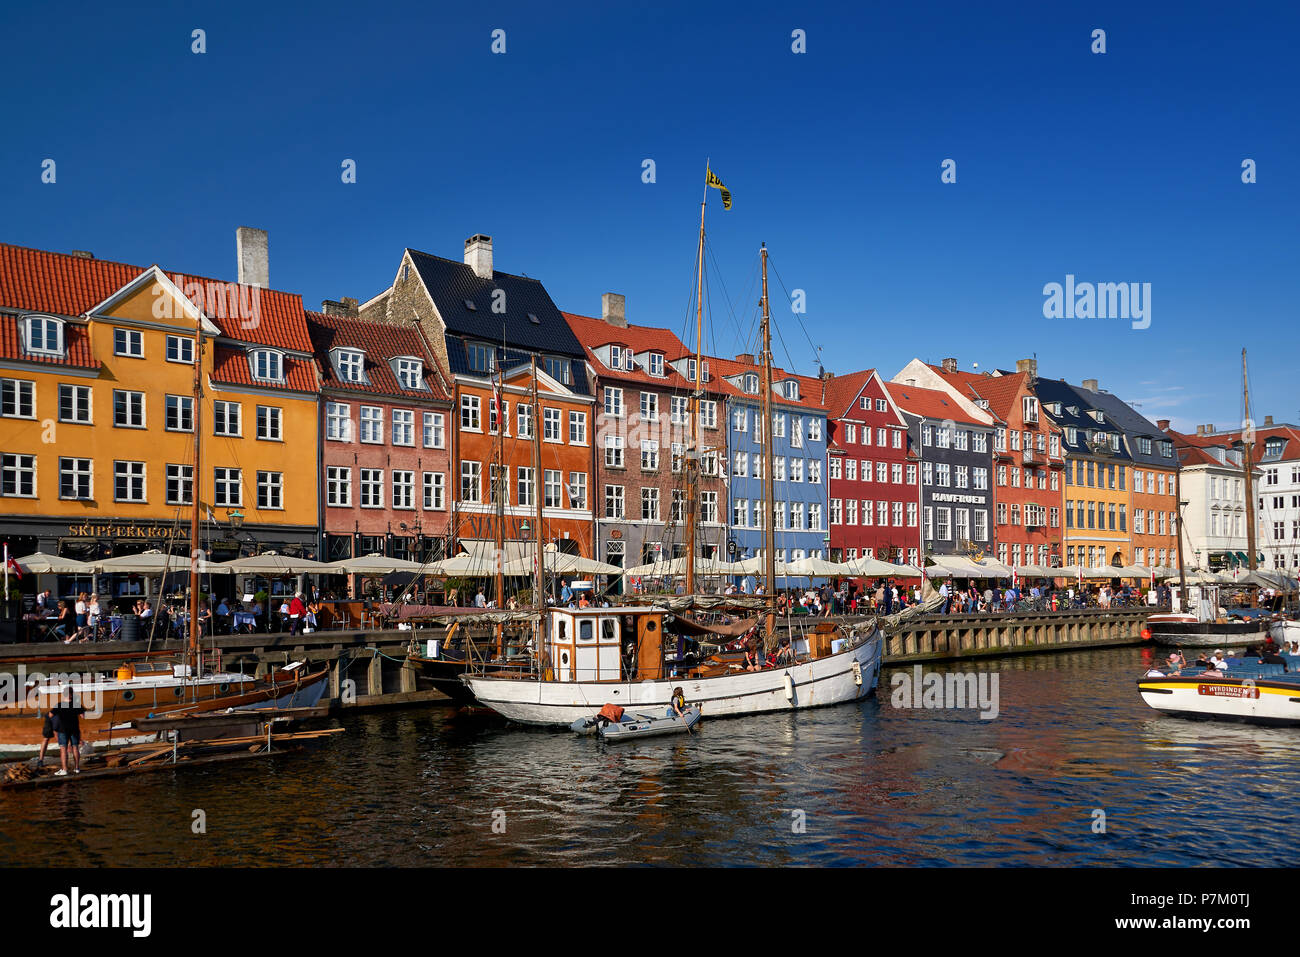 touristic distric nyhavn in capital of denmark copenhagen - Stock Image